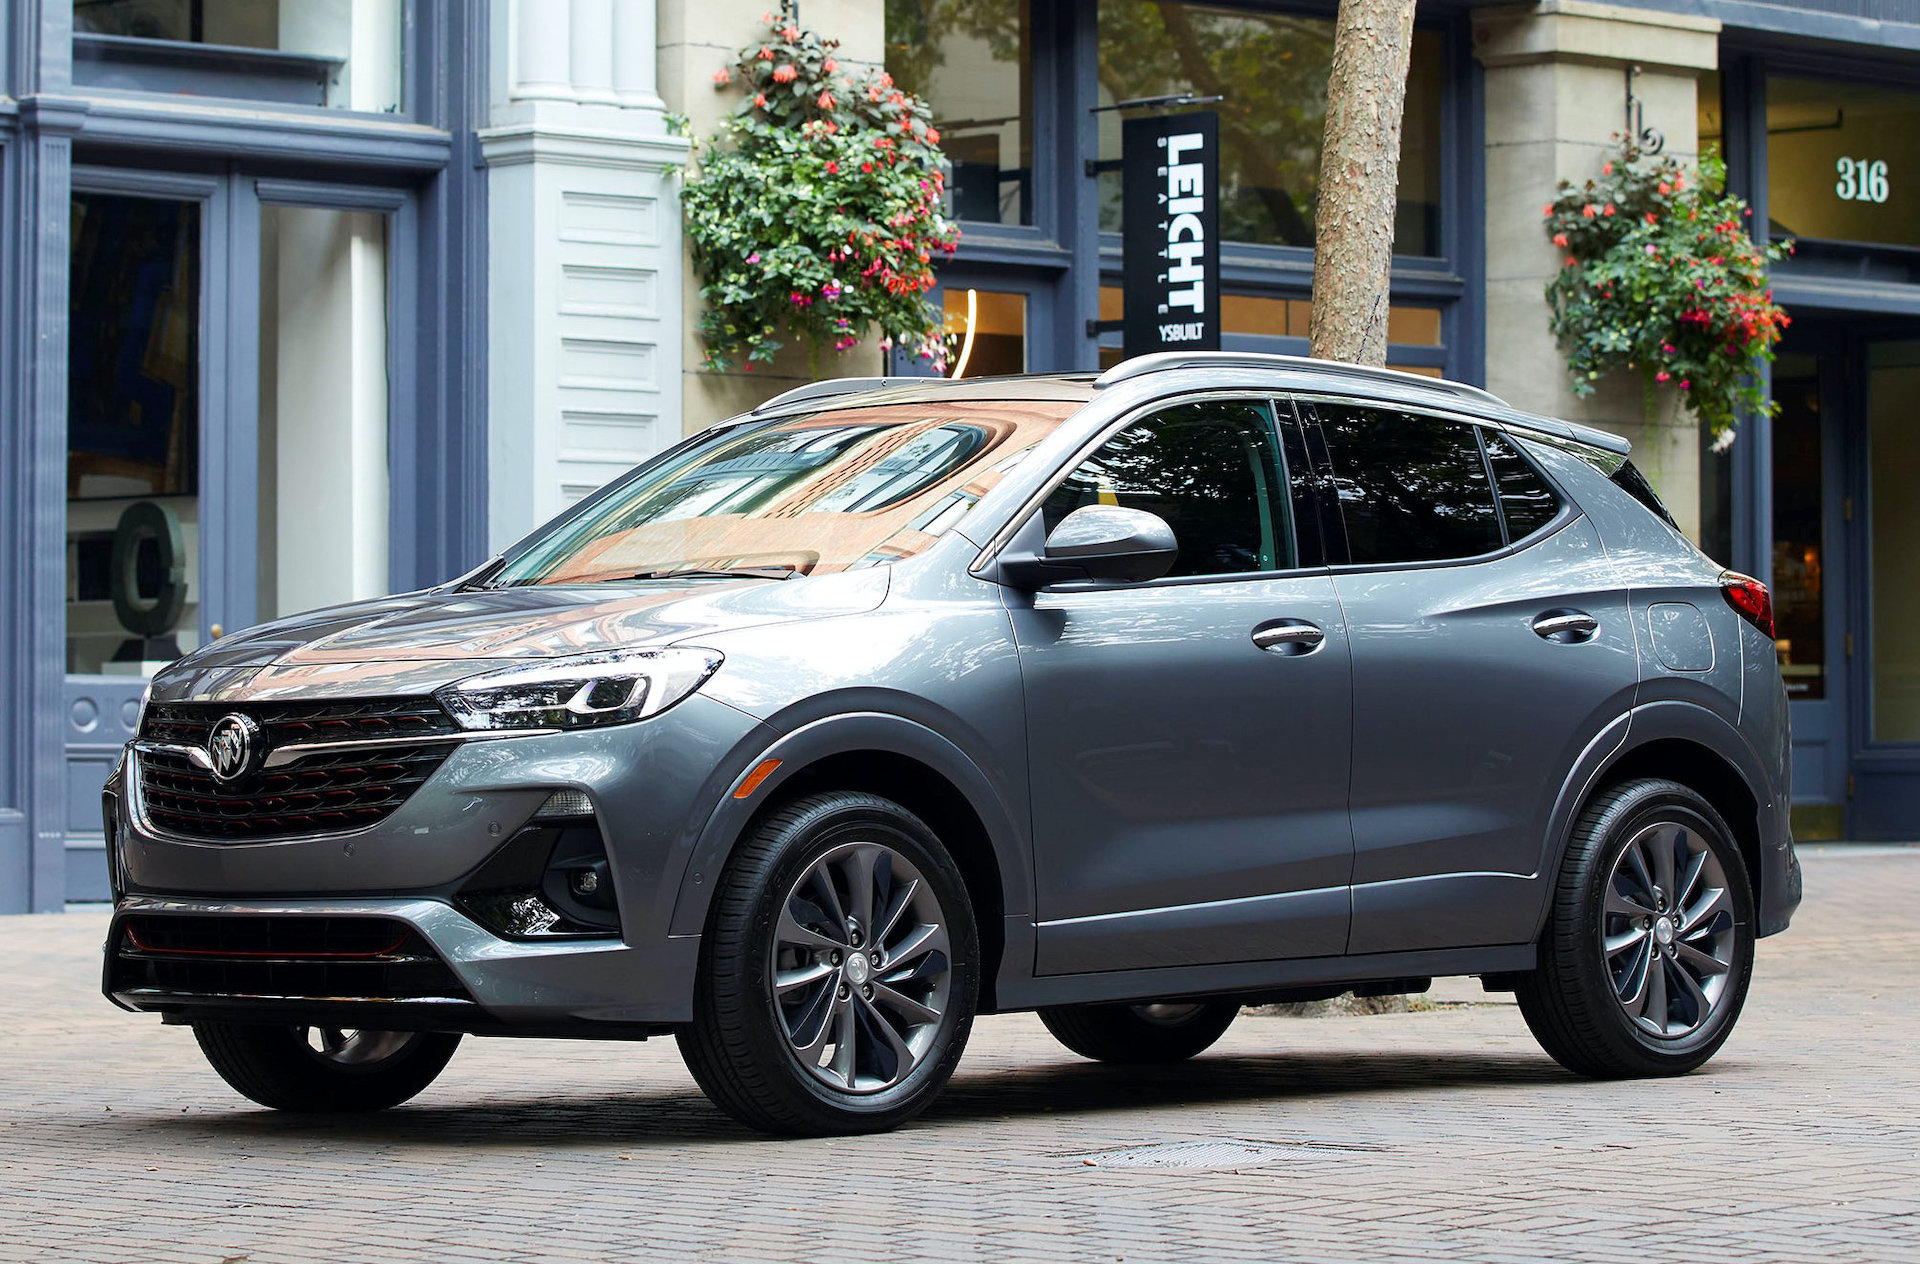 2021 Buick Encore Review, Ratings, Specs, Prices, And Photos New 2021 Buick Encore Colors, Interior, Awd